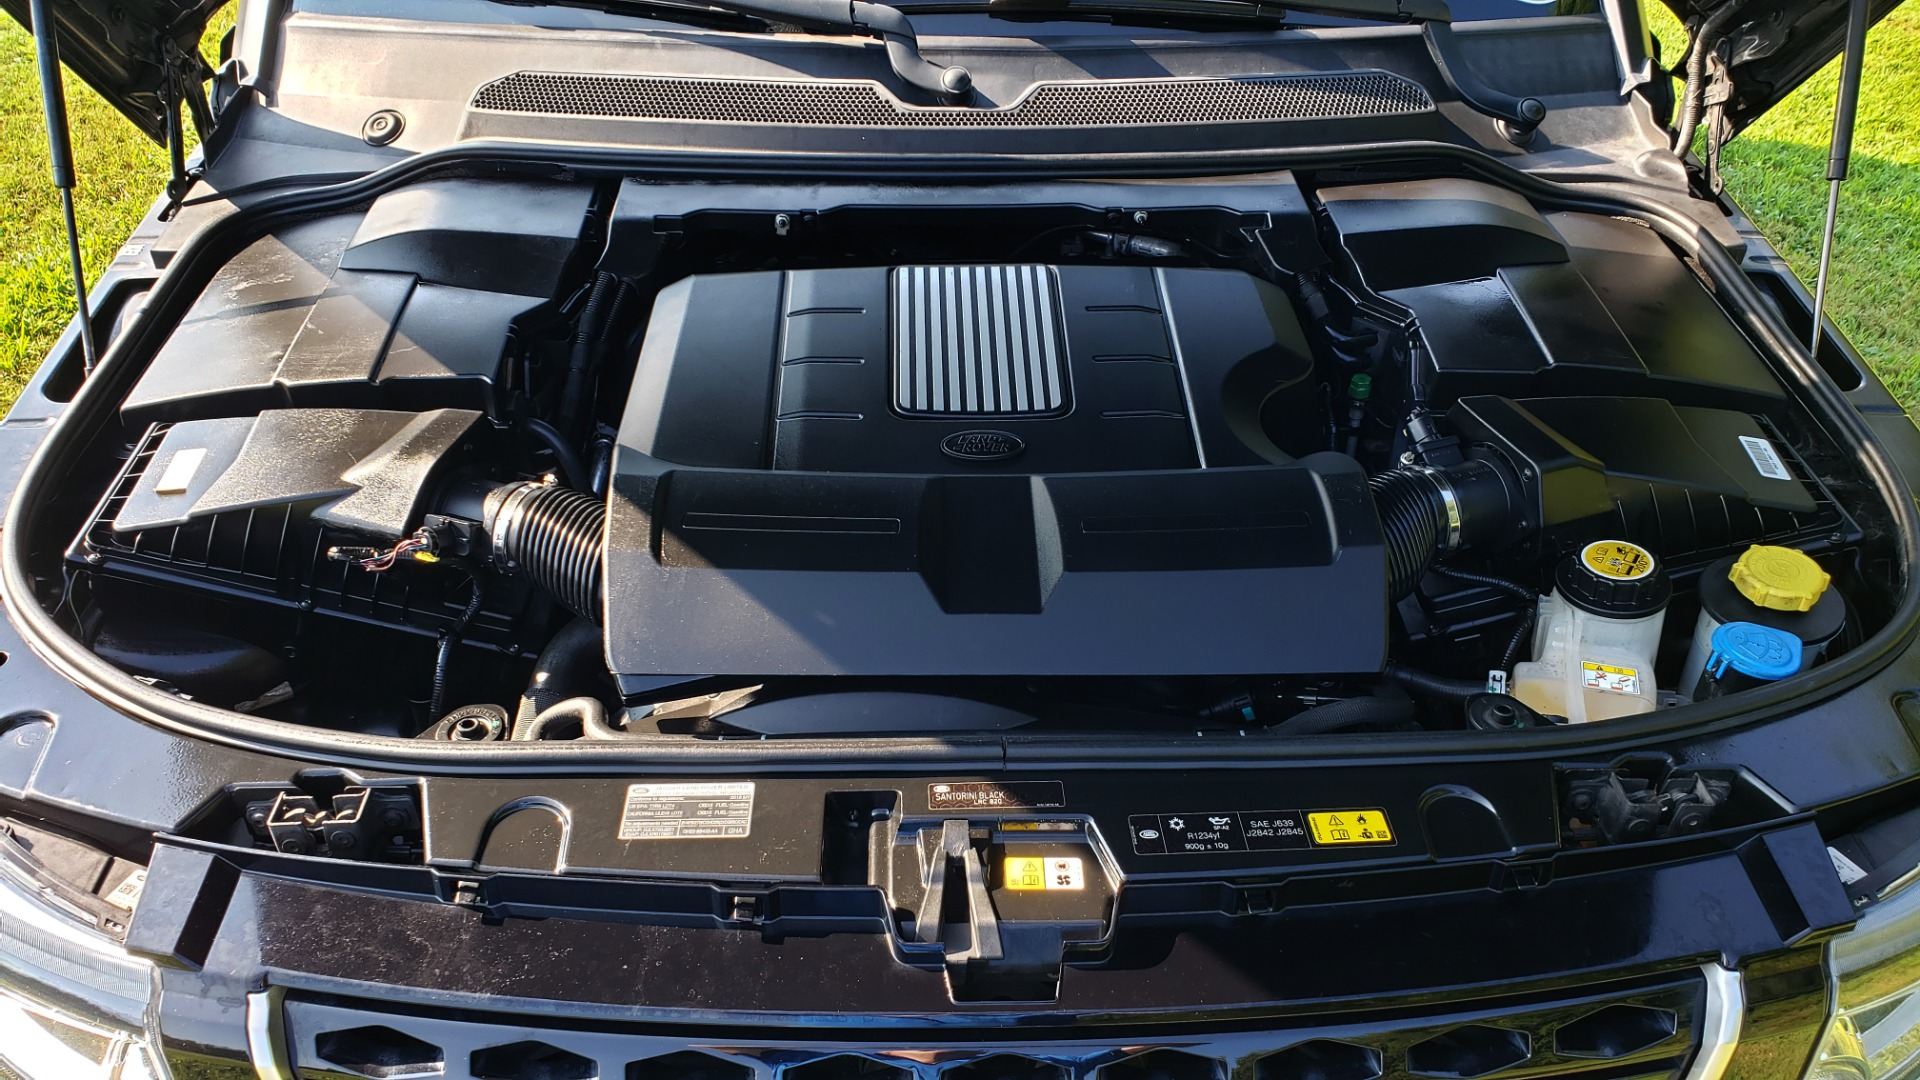 Used 2016 Land Rover LR4 HSE LUX LANDMARK EDITION / NAV / HTD STS / SUNROOF / REARVIEW for sale Sold at Formula Imports in Charlotte NC 28227 23